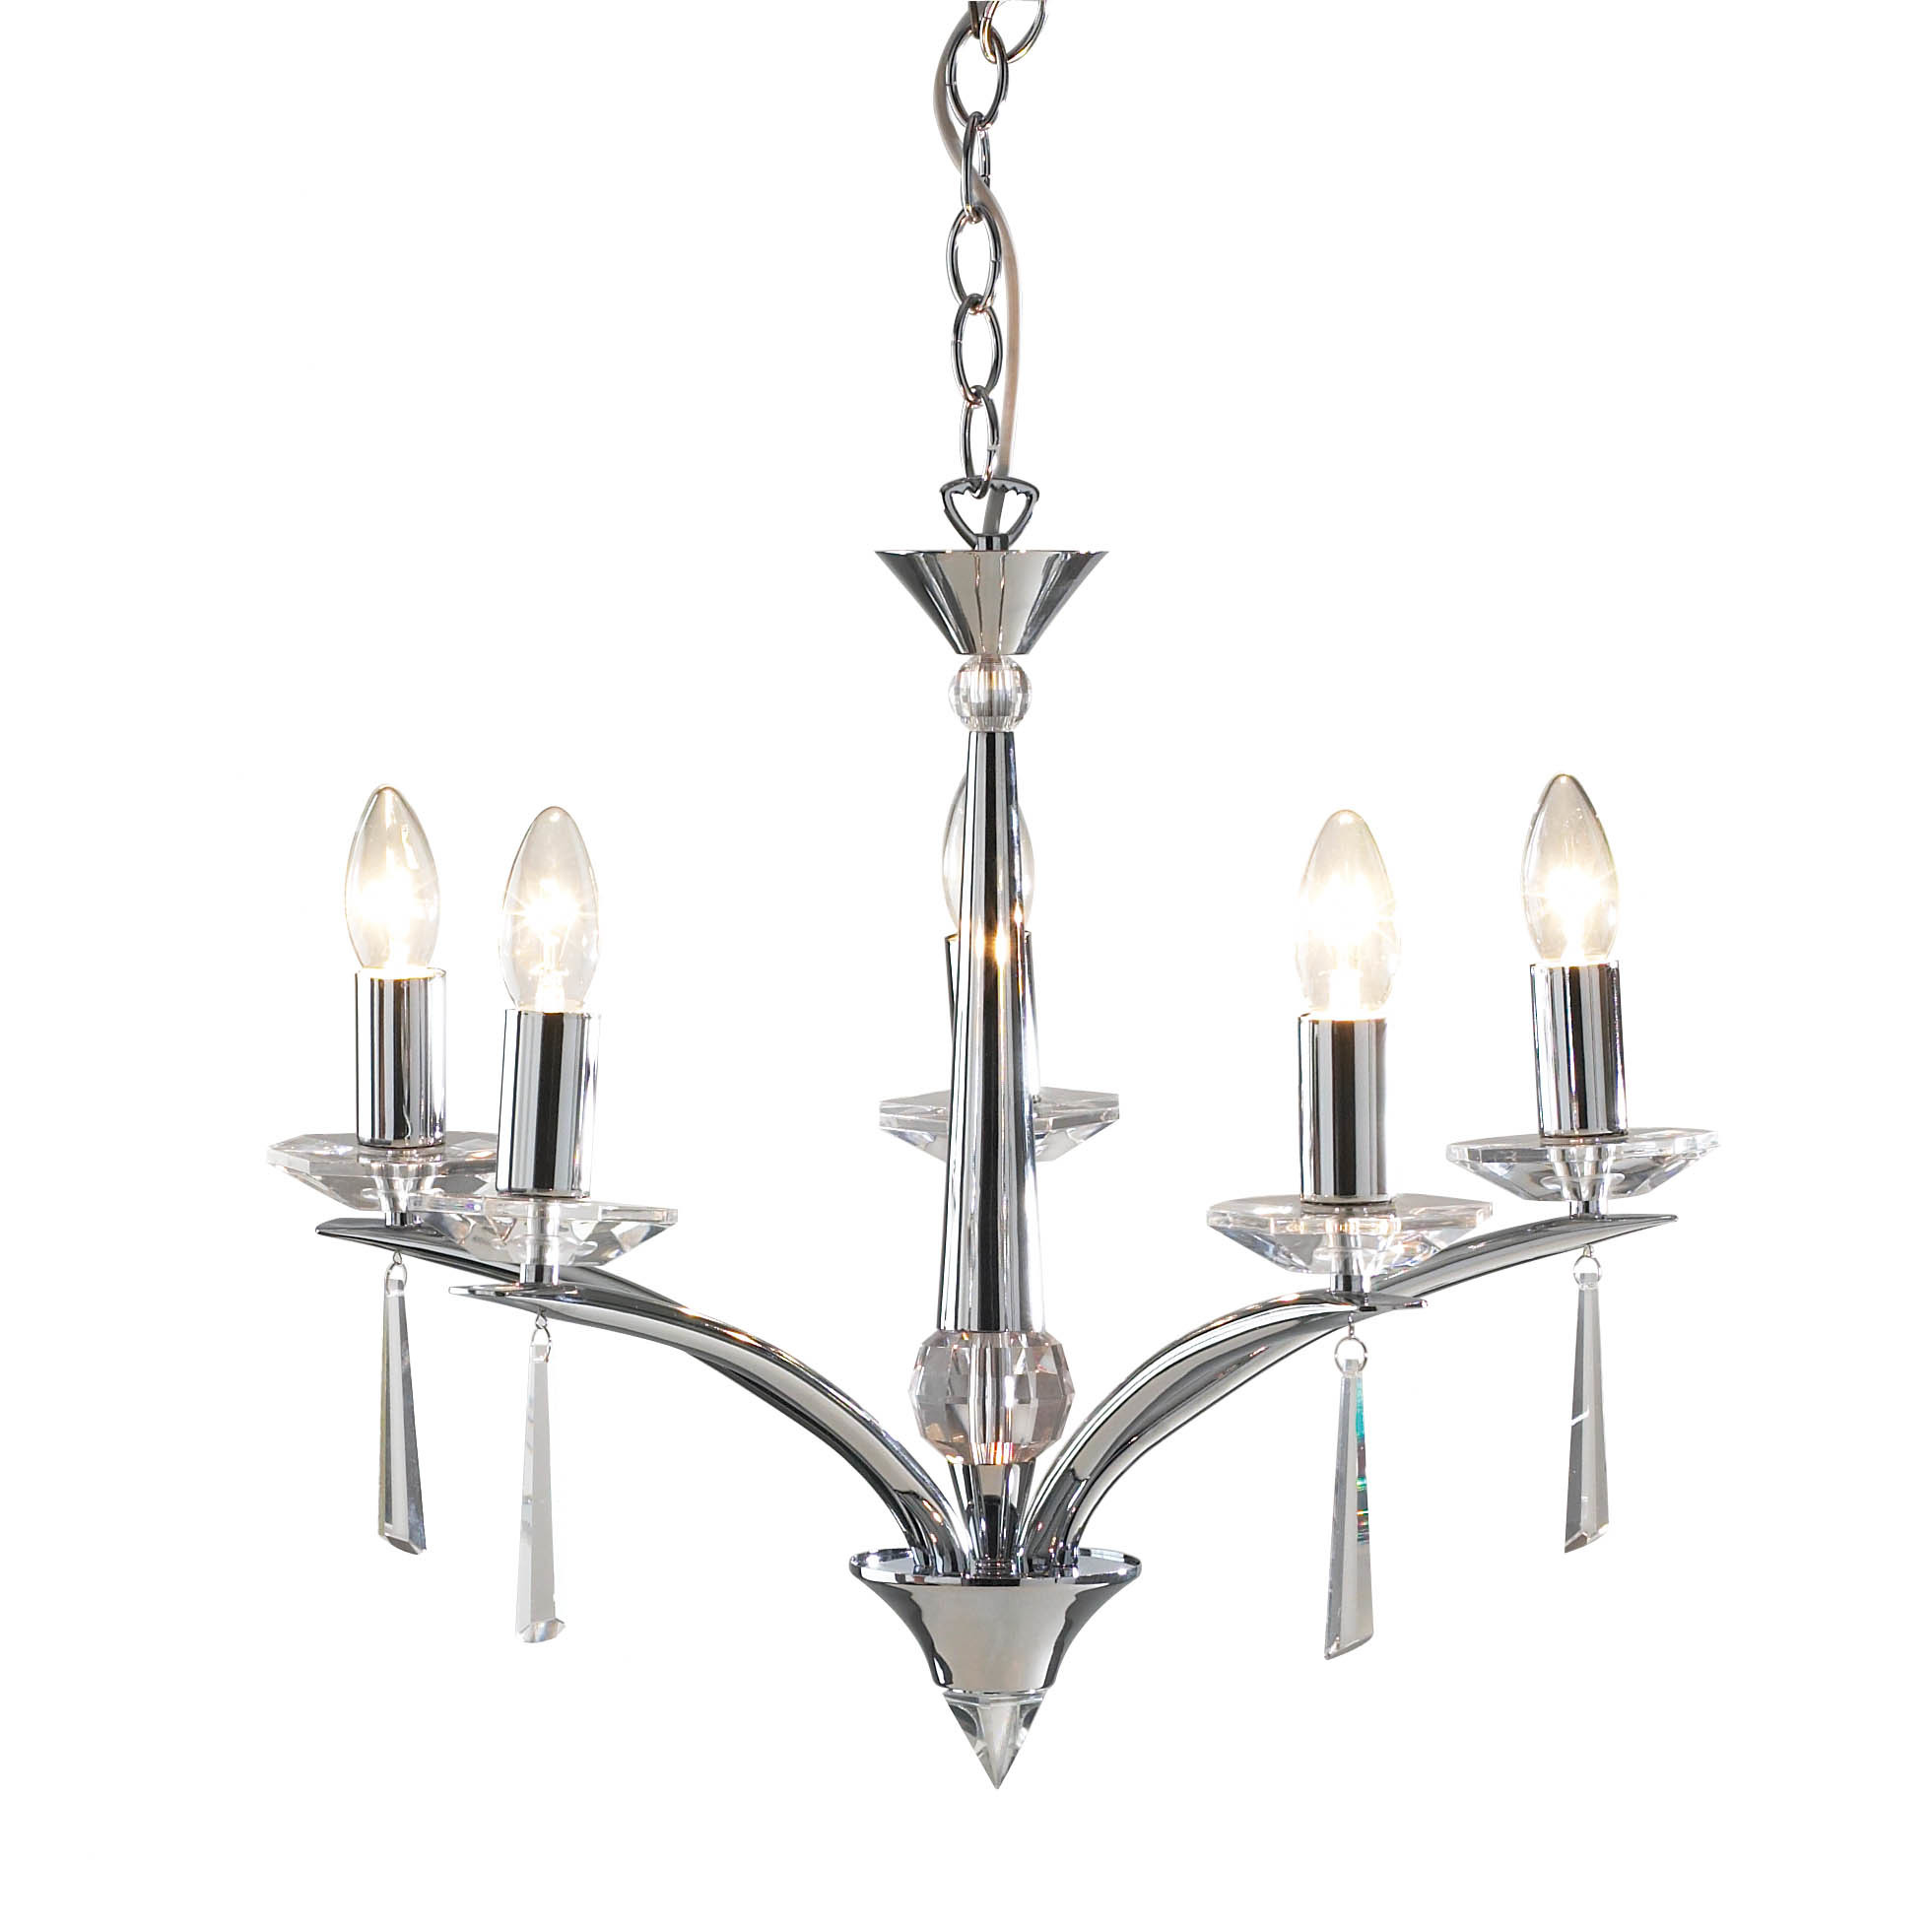 Dar Lighting Hyperion 5 Light Candle Chandelier